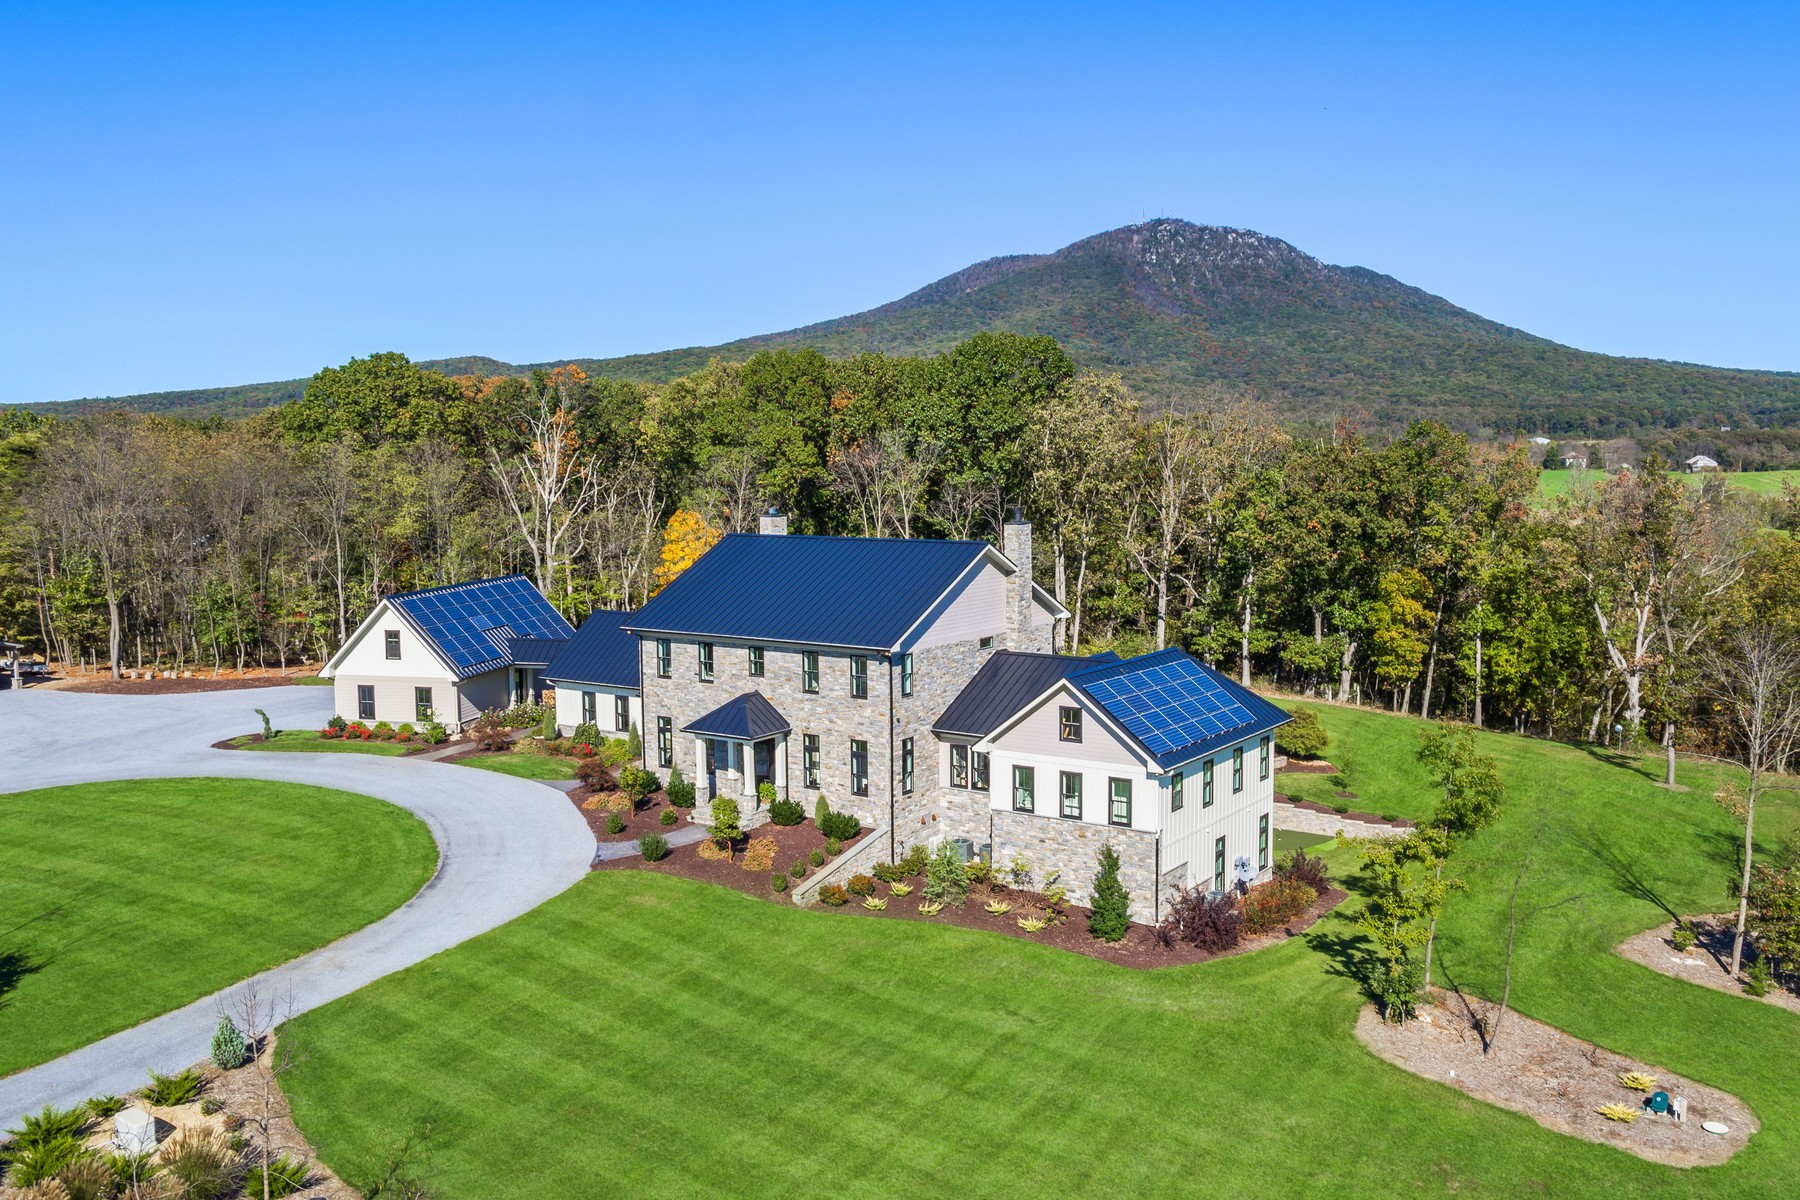 Maison unifamiliale pour l Vente à 563 Hickory Point Trail, Penn Laird Penn Laird, Virginia 22846 États-Unis